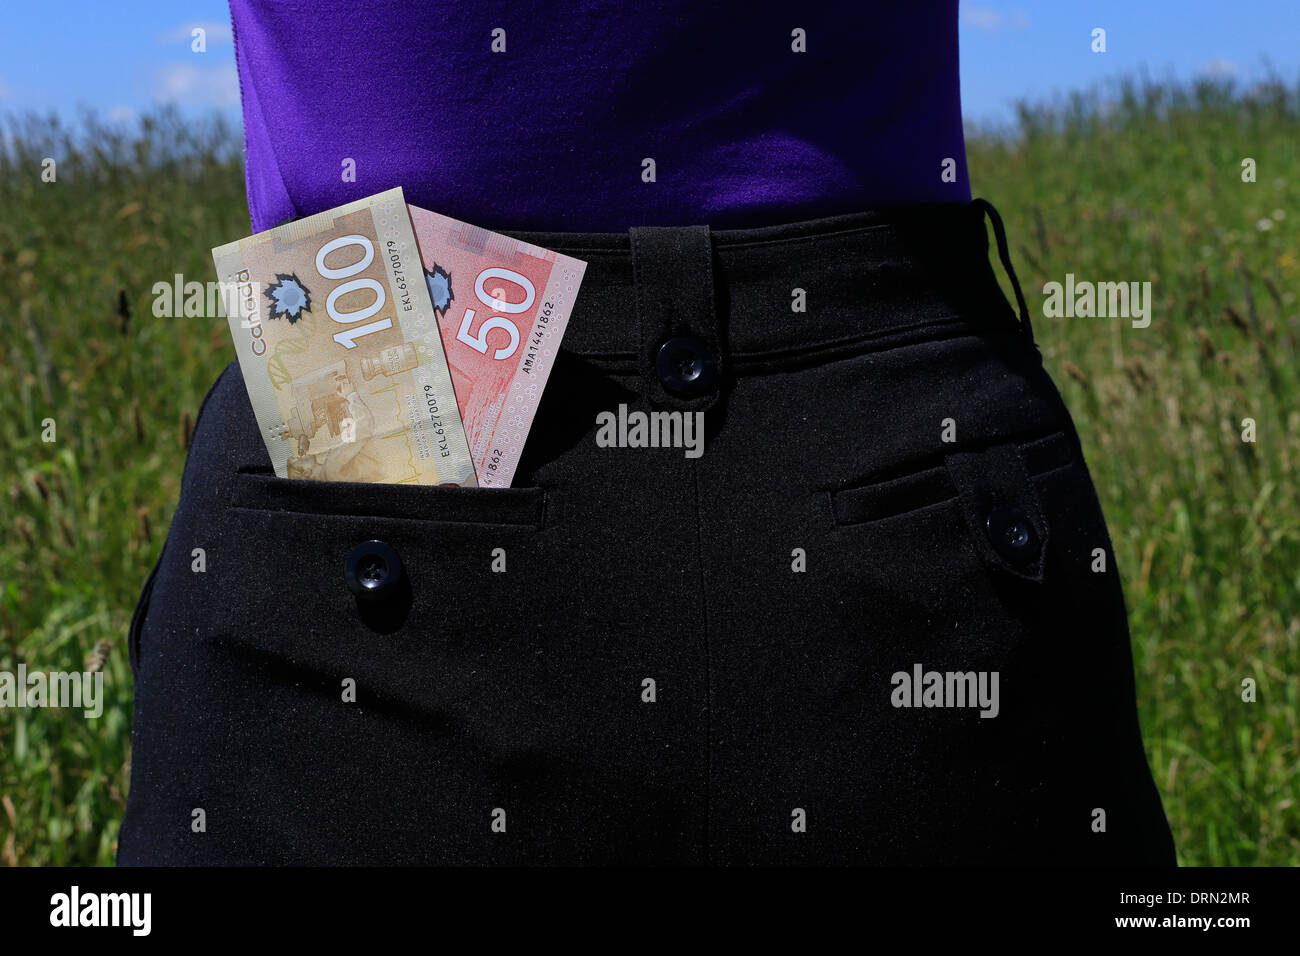 A 100 Canadian dollar bill and a 50 Canadian dollar bill tucked in the back pocket of a woman's pants who is standing in a field - Stock Image